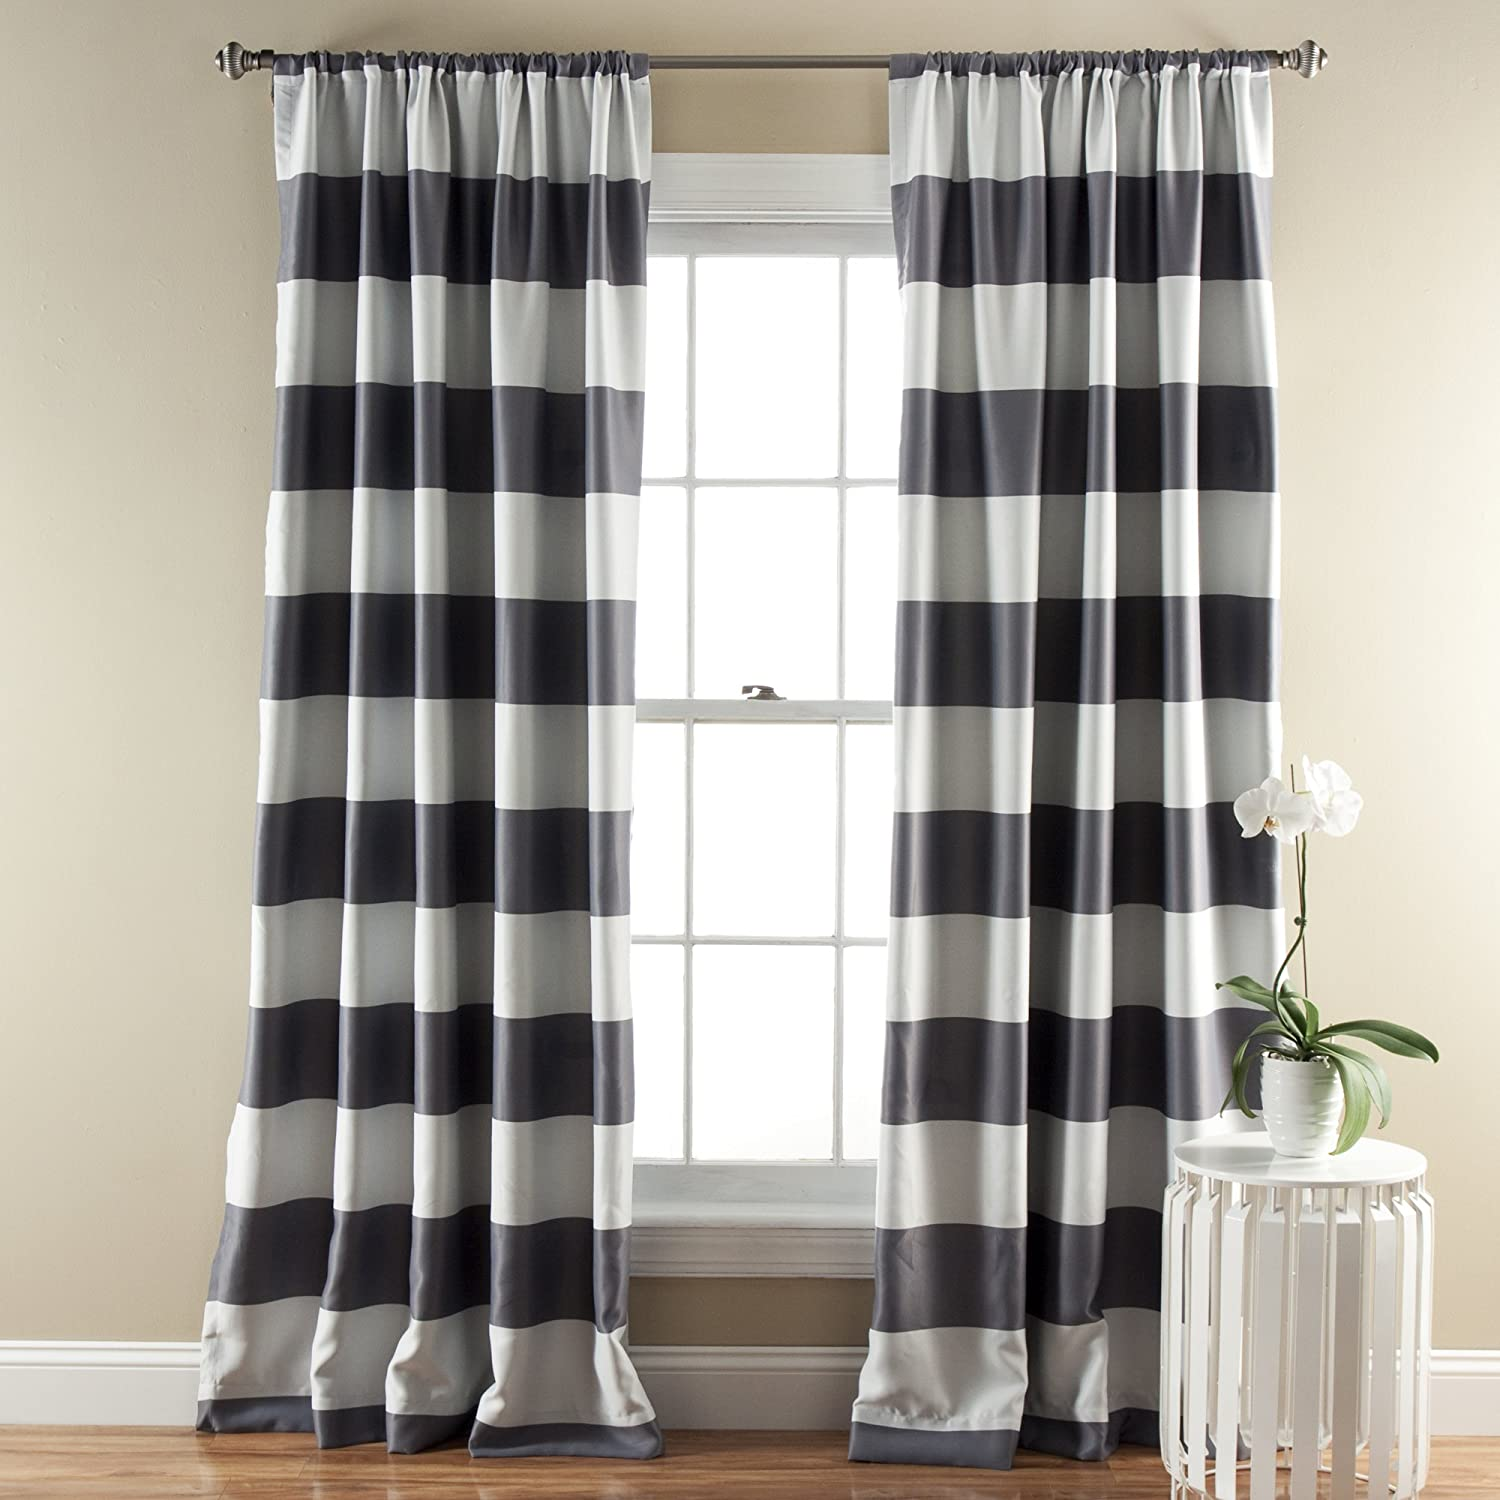 ordinary 52 Inch Length Curtains Part - 14: Amazon.com: Lush Décor Stripe Room Darkening Window Curtain Panel, 84 inch  by 52 inch, Navy, Set of 2: Home u0026 Kitchen